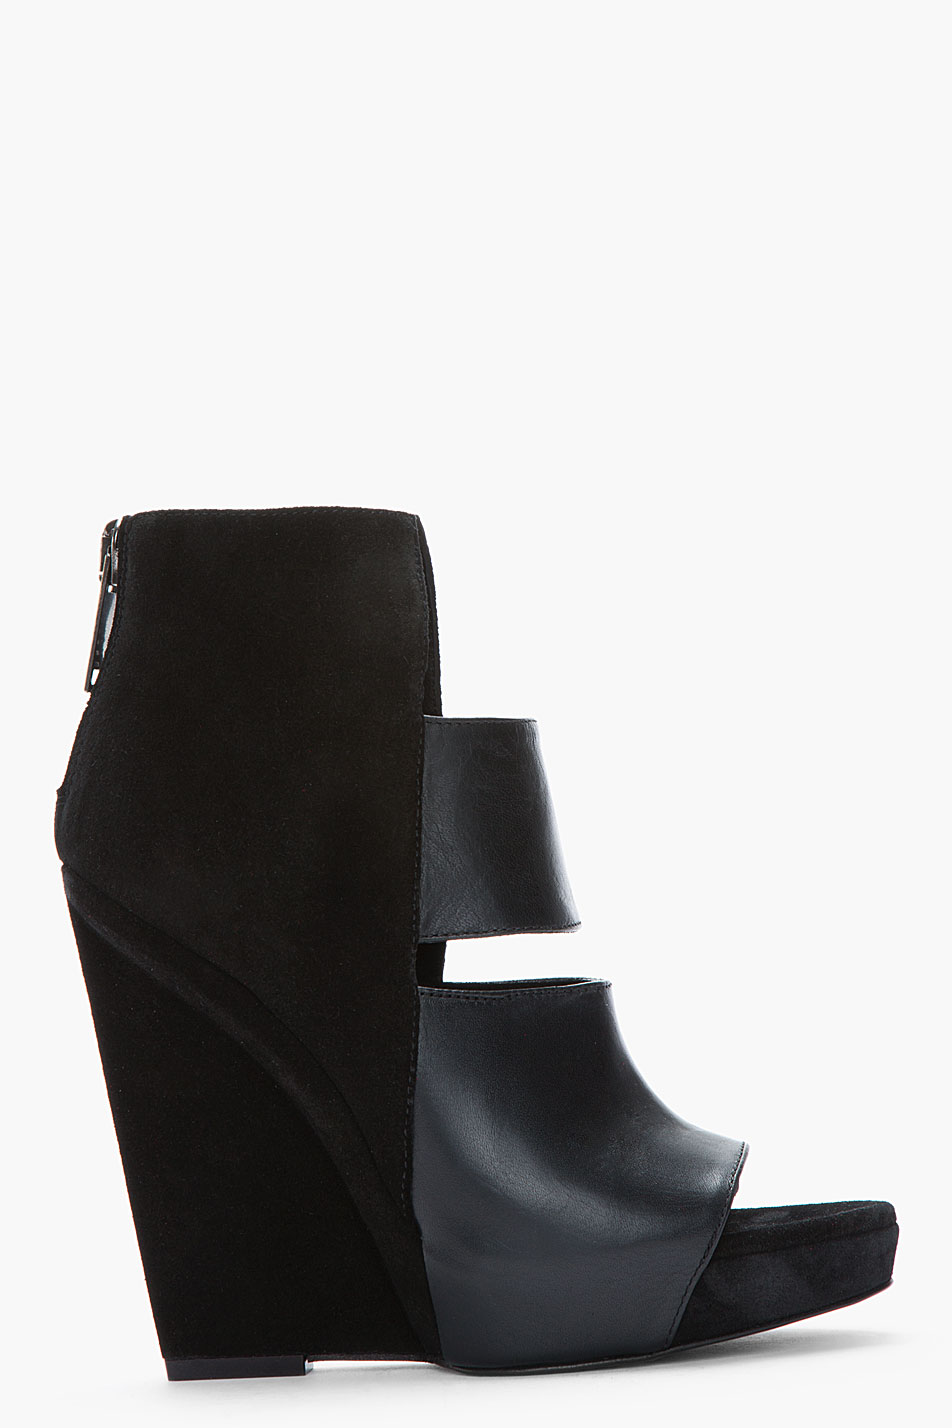 gareth pugh black suede and polished leather cut_out sandals